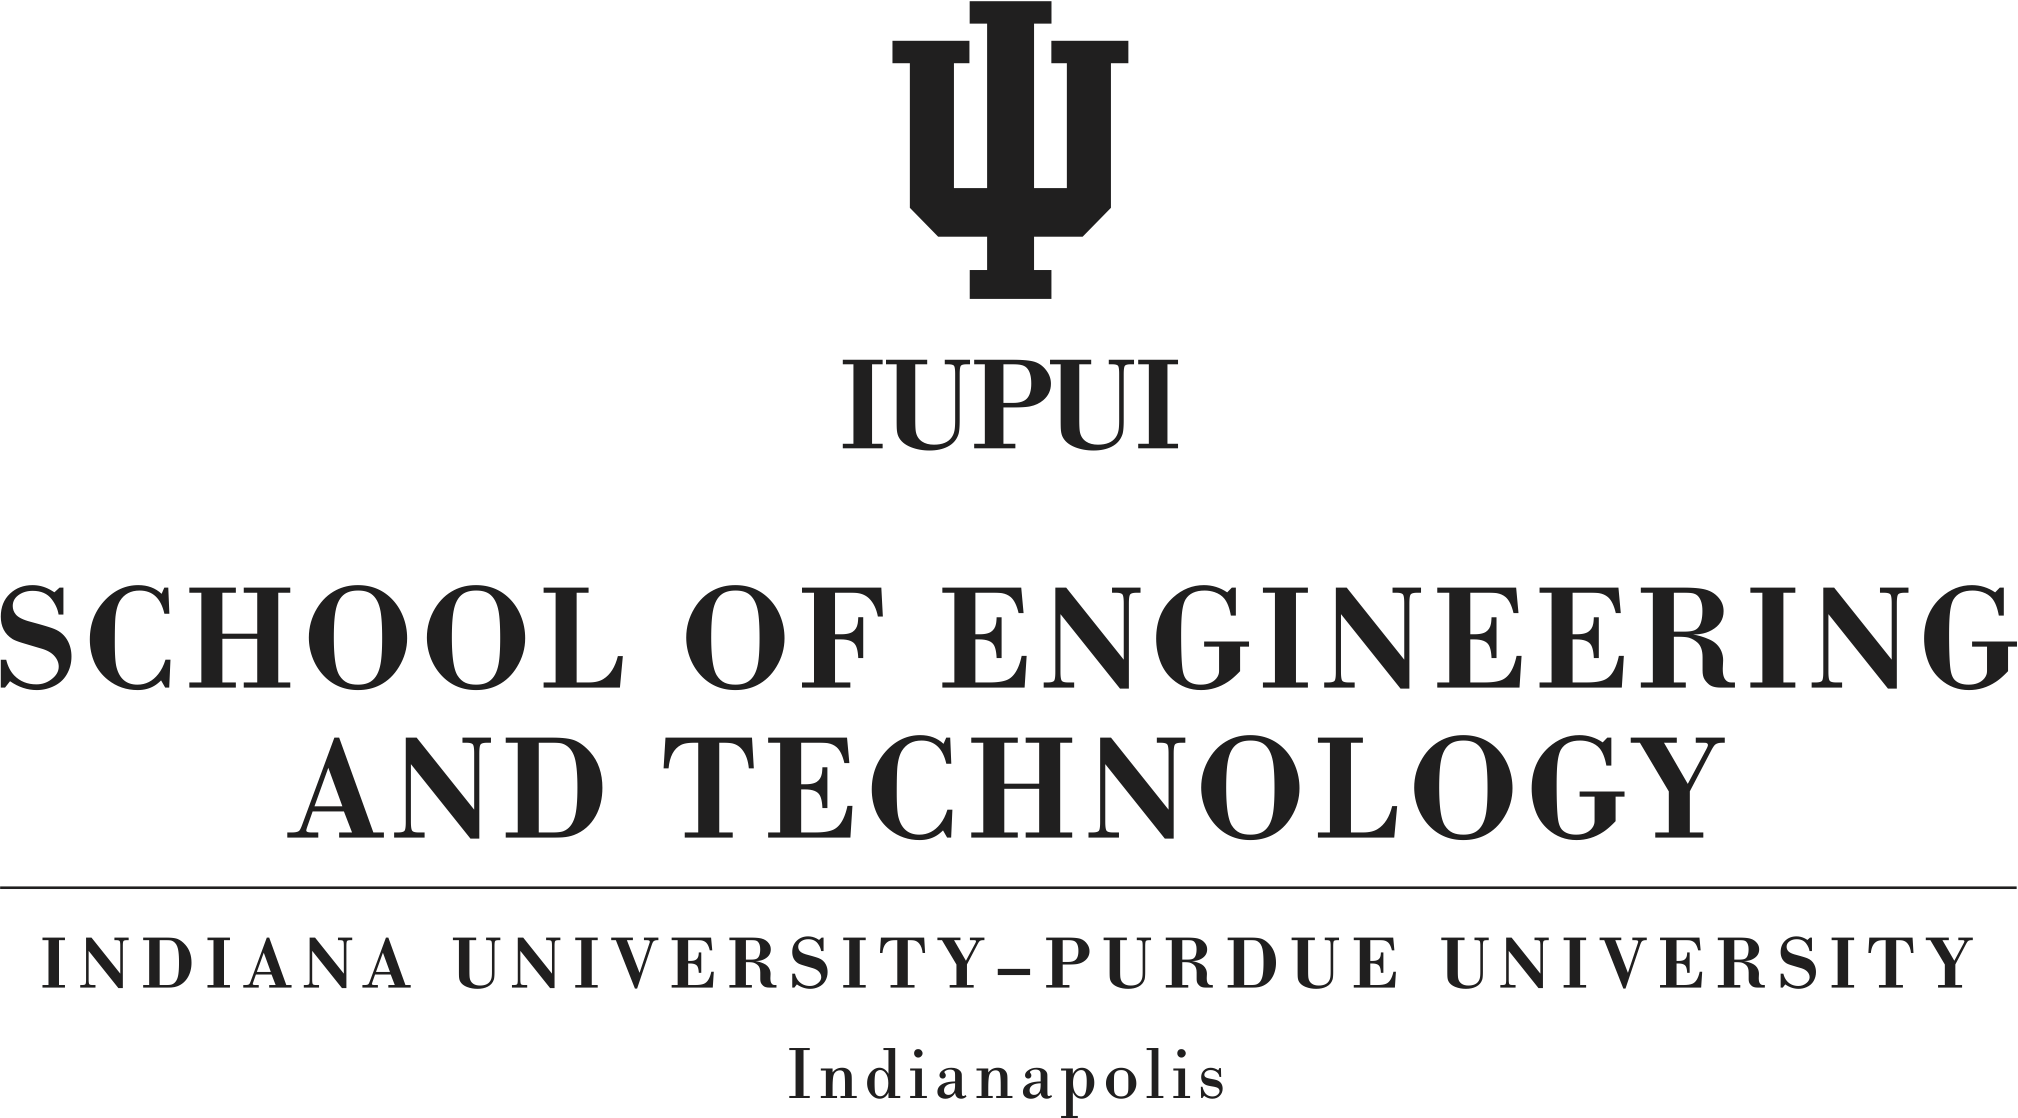 IUPUI School of Engineering and Technology.png